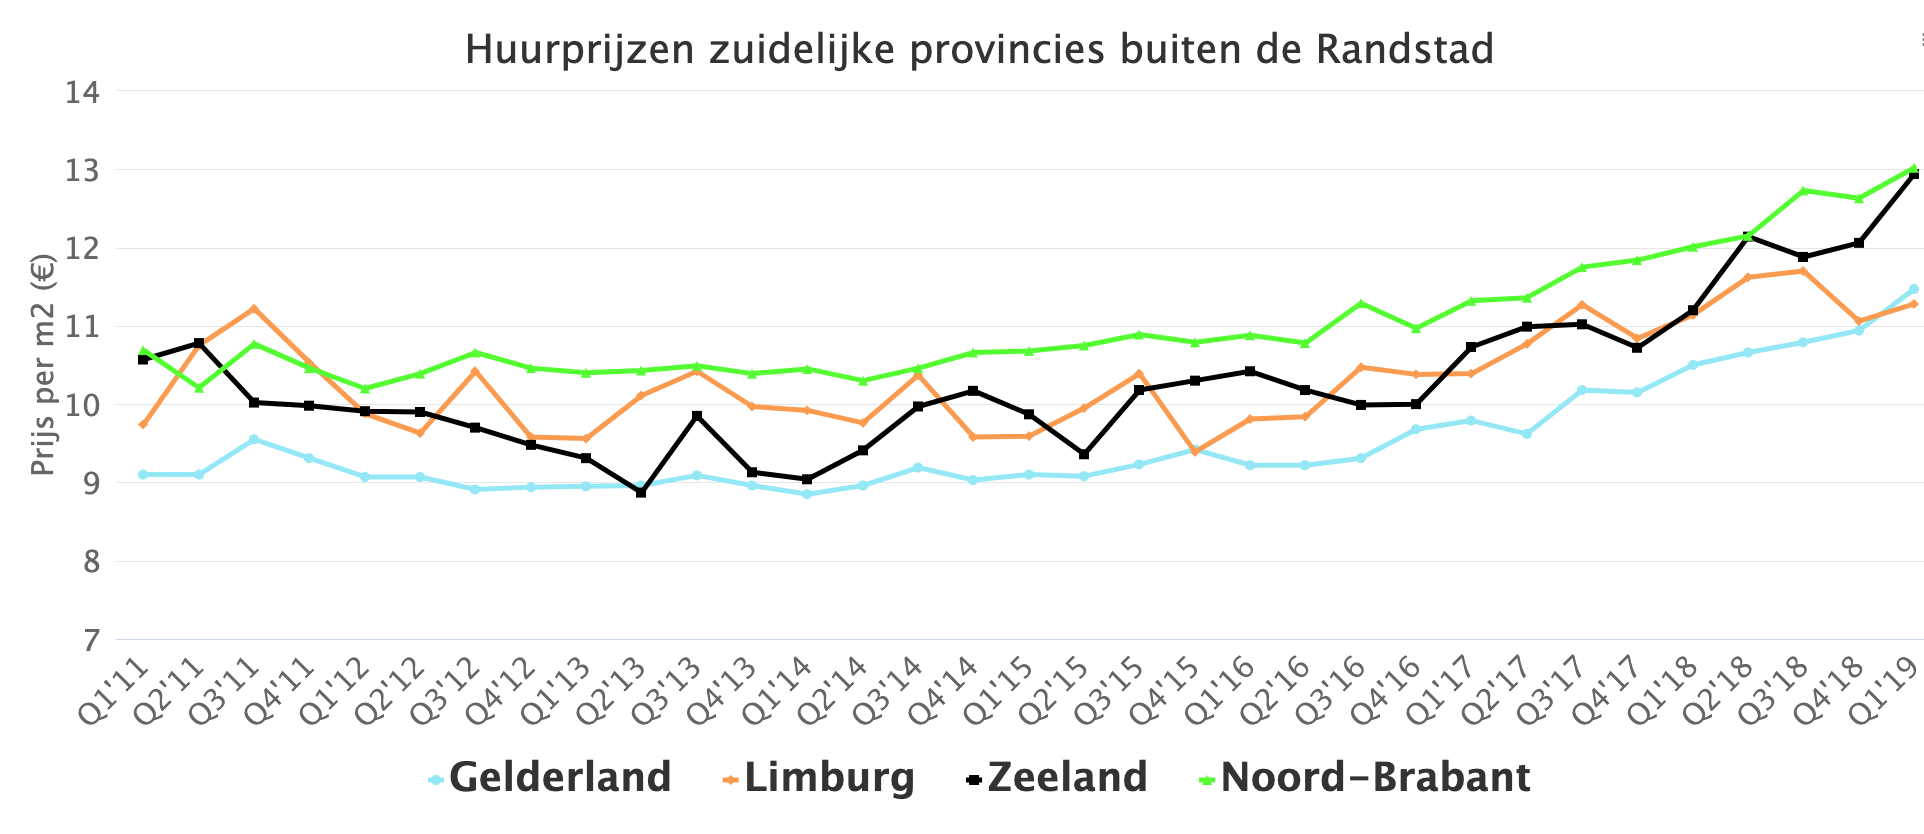 Rental prices for southern provinces outside the Randstad